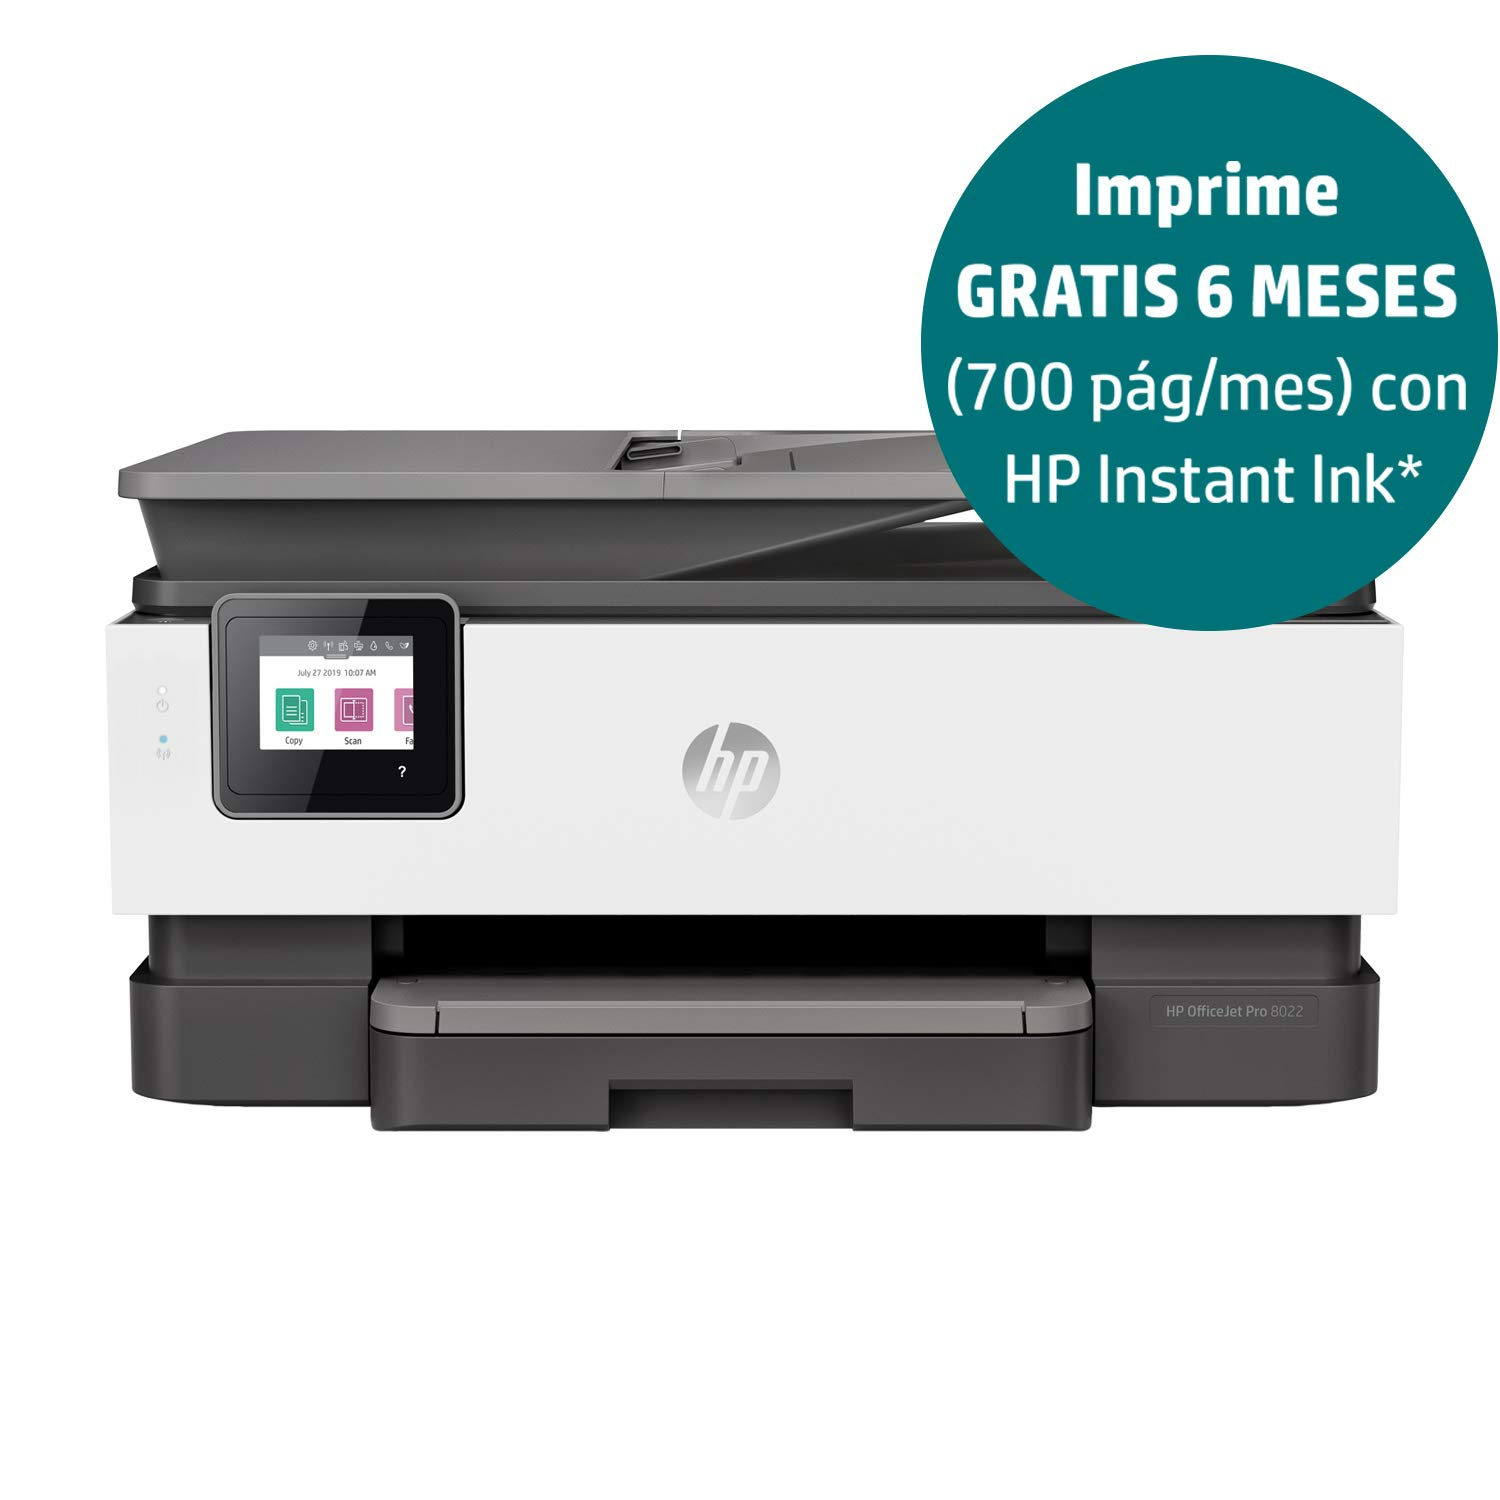 HP OfficeJet Pro 8022 - Impresora Multifunción de Tinta (20 ppm, 4800 x 1200 dpi, A4, WiFi) Color Gris